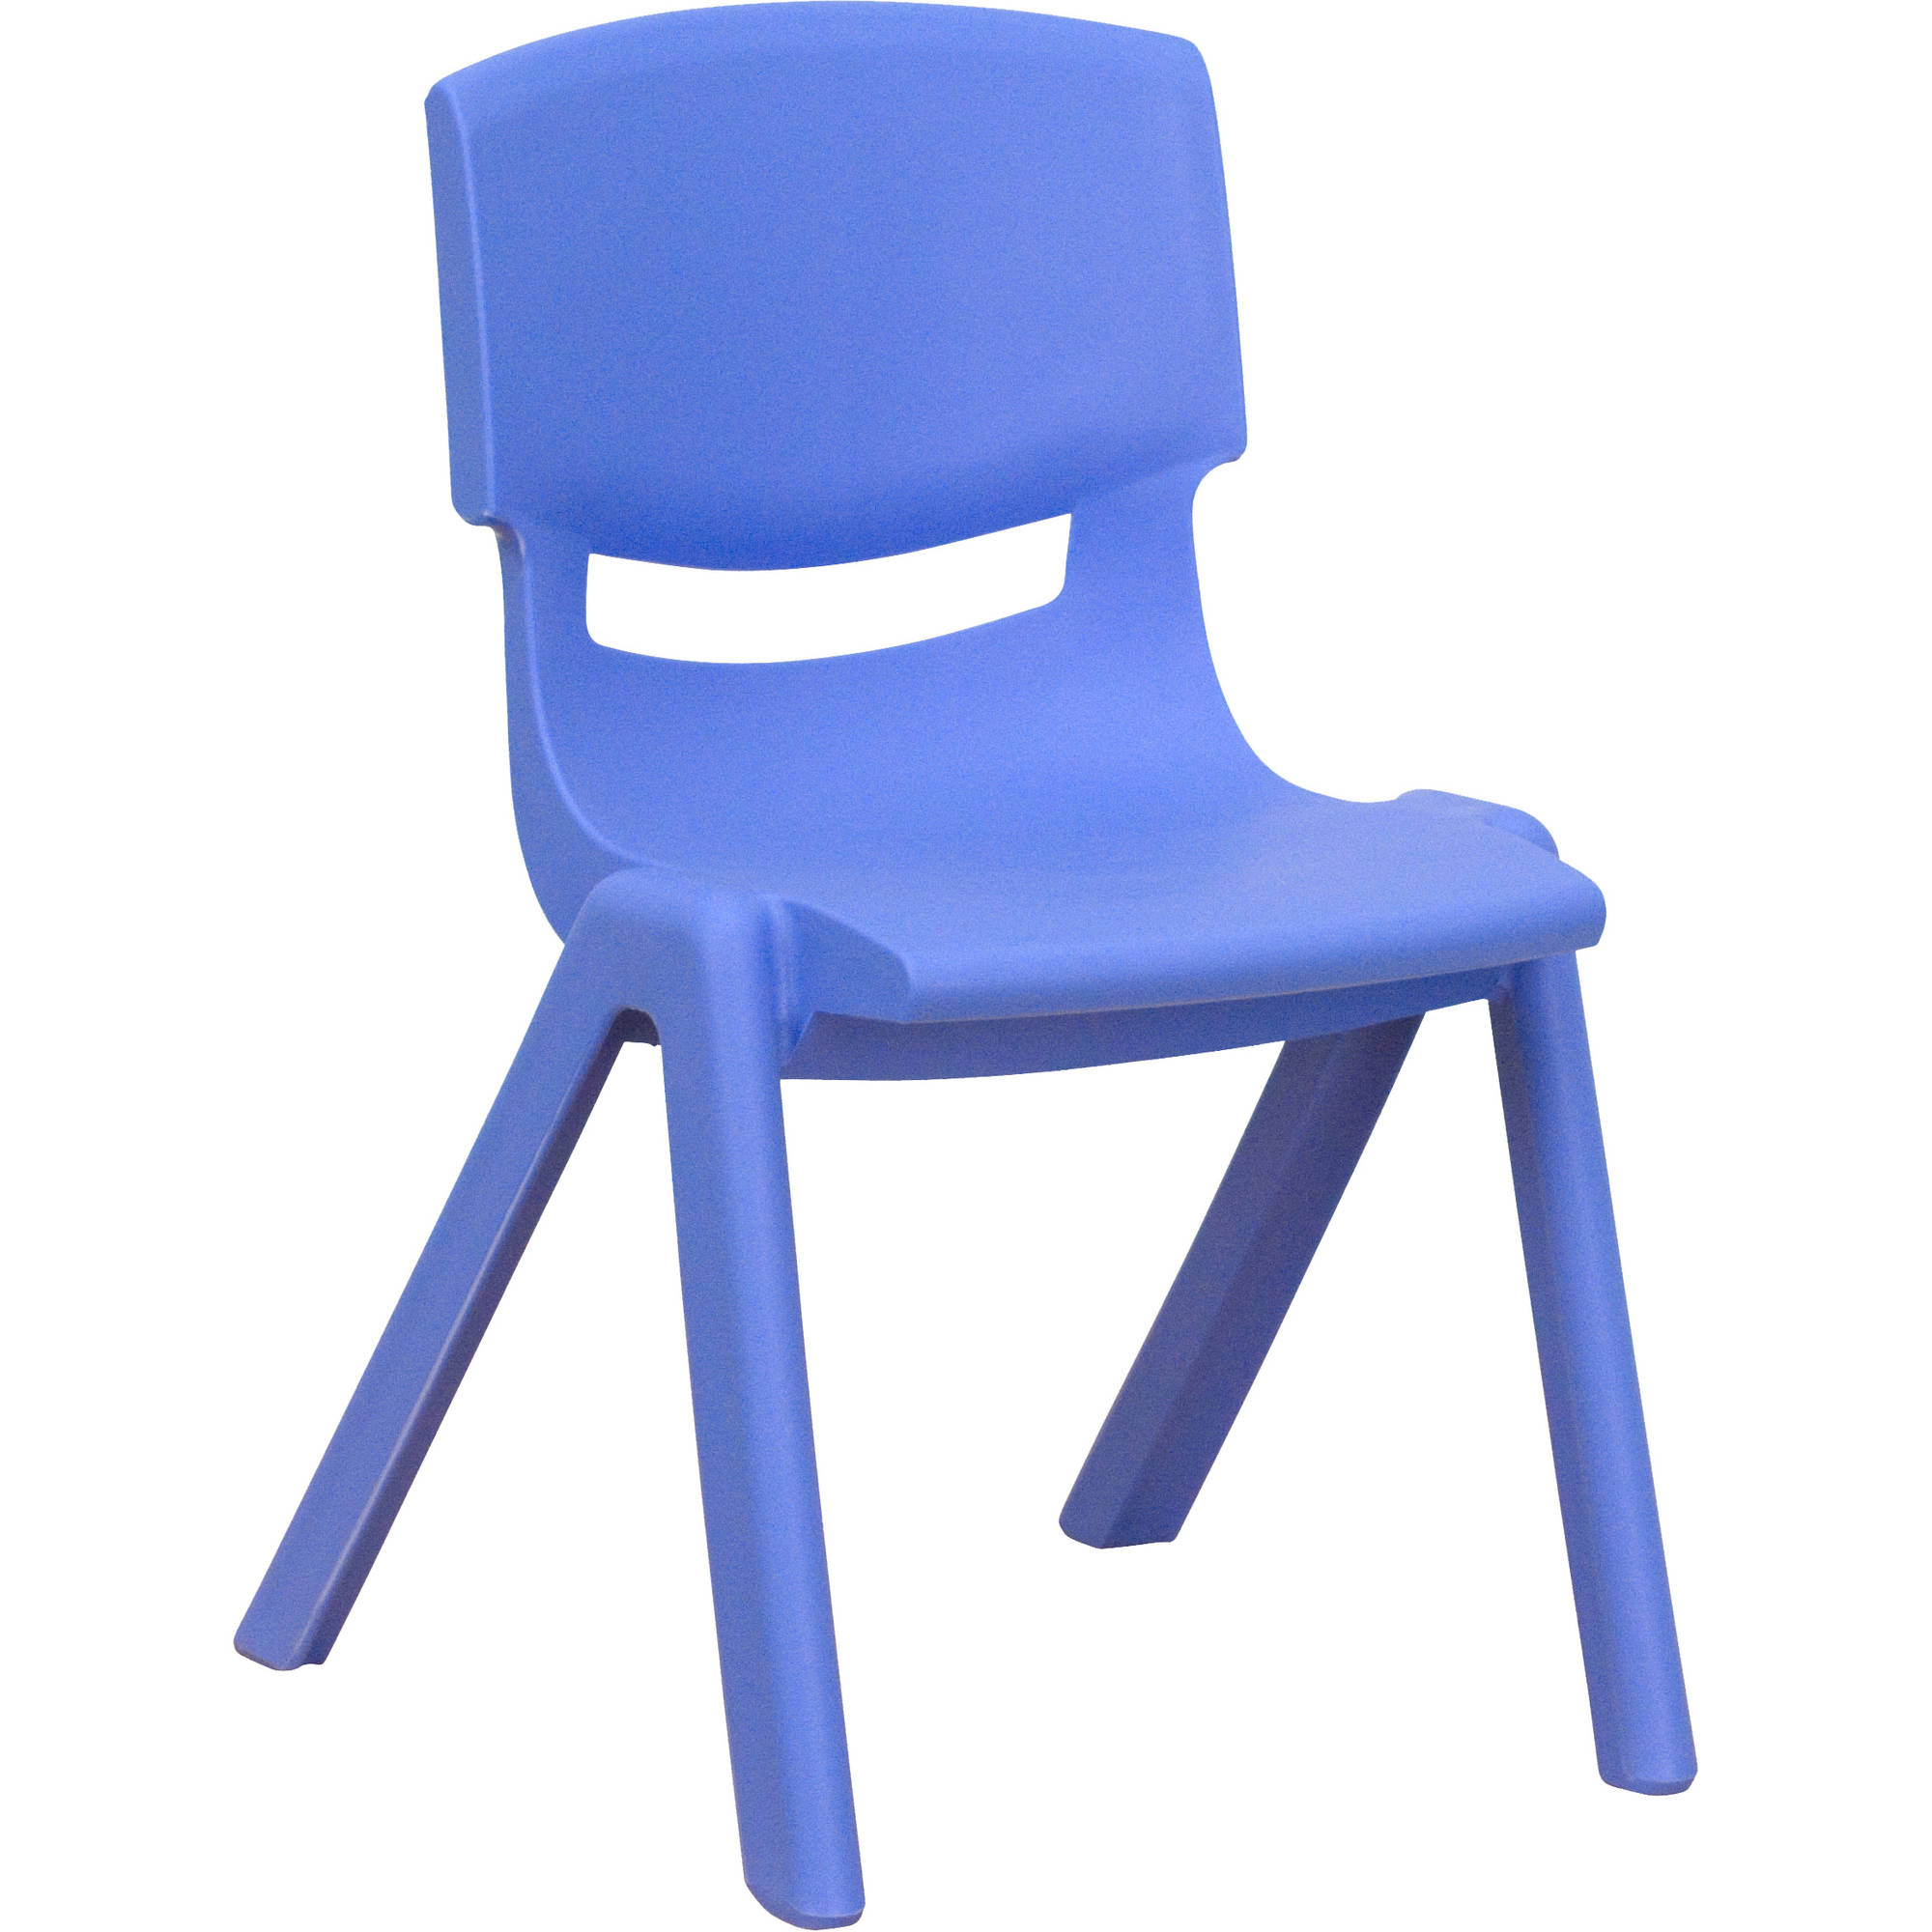 kids stackable chairs wholesale chair covers for banquet flash furniture plastic school 12 seat height set of 4 multiple colors walmart com